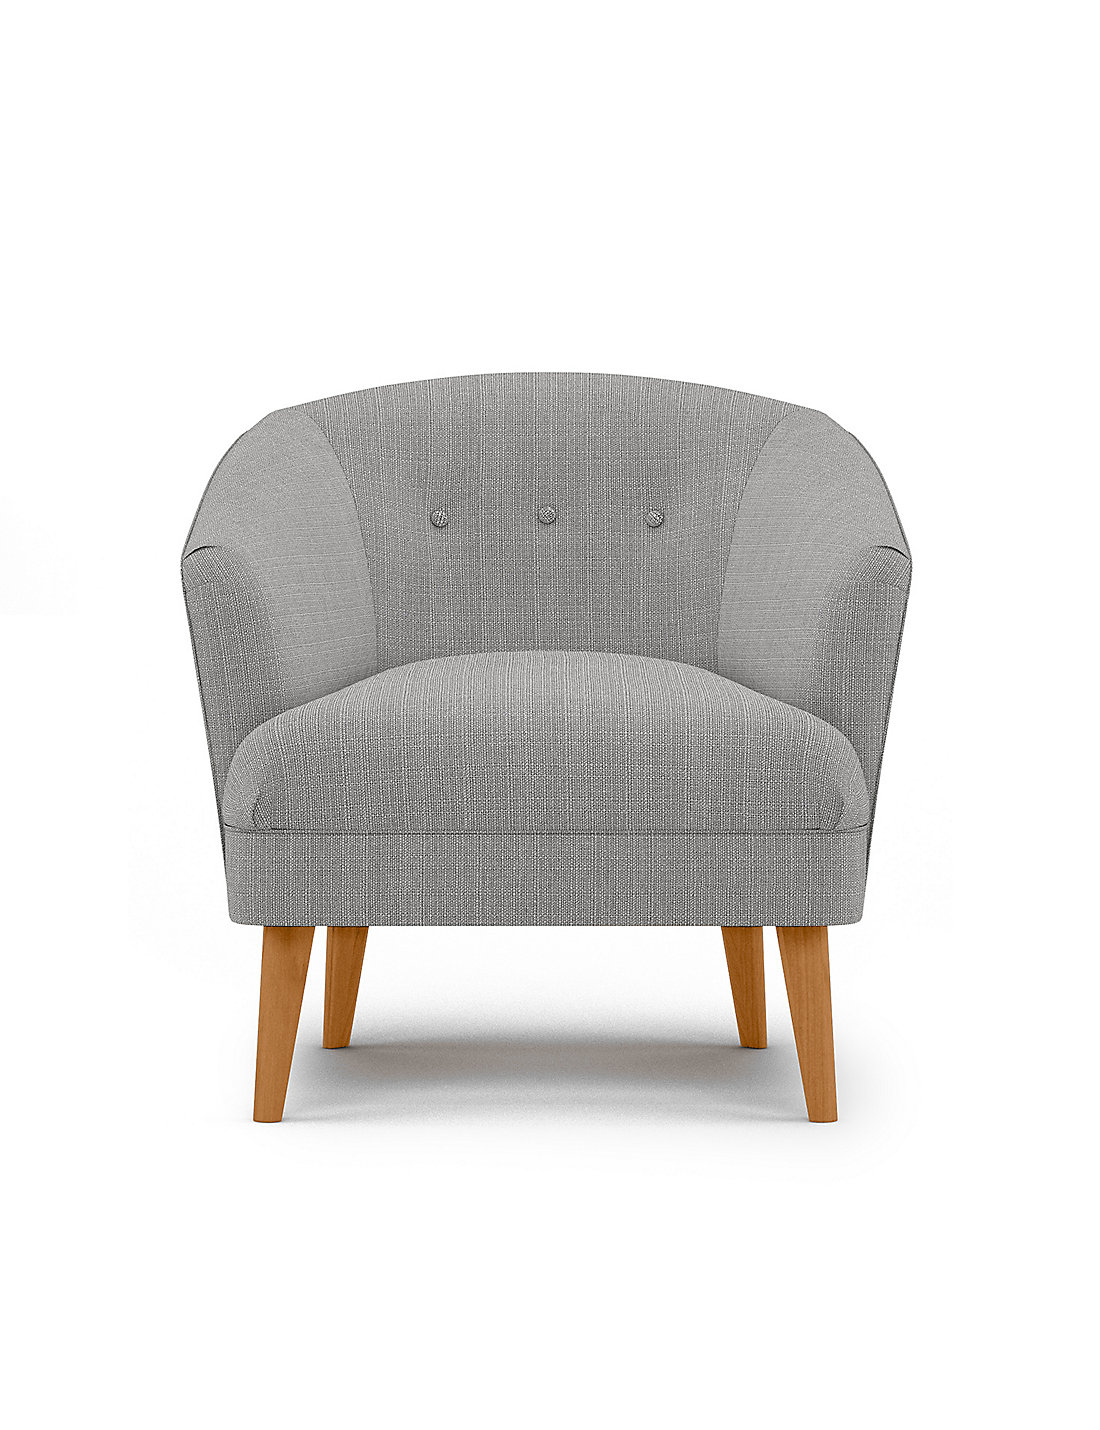 Benni Armchair Soljen Grey  sc 1 st  Marks u0026 Spencer : chaise armchair - Sectionals, Sofas & Couches